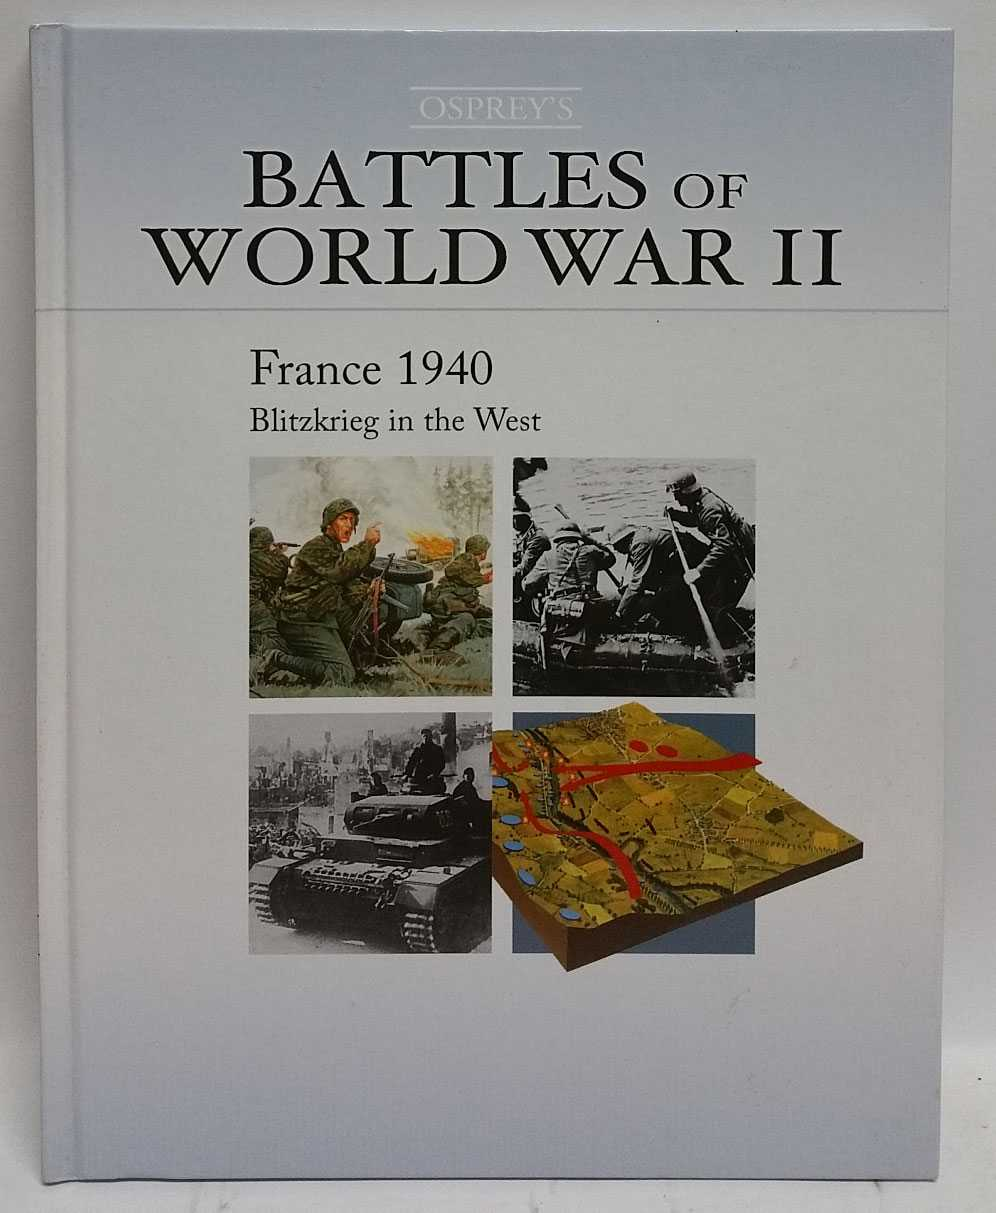 France 1940: Blitzkrieg in the West, Alan Shepperd